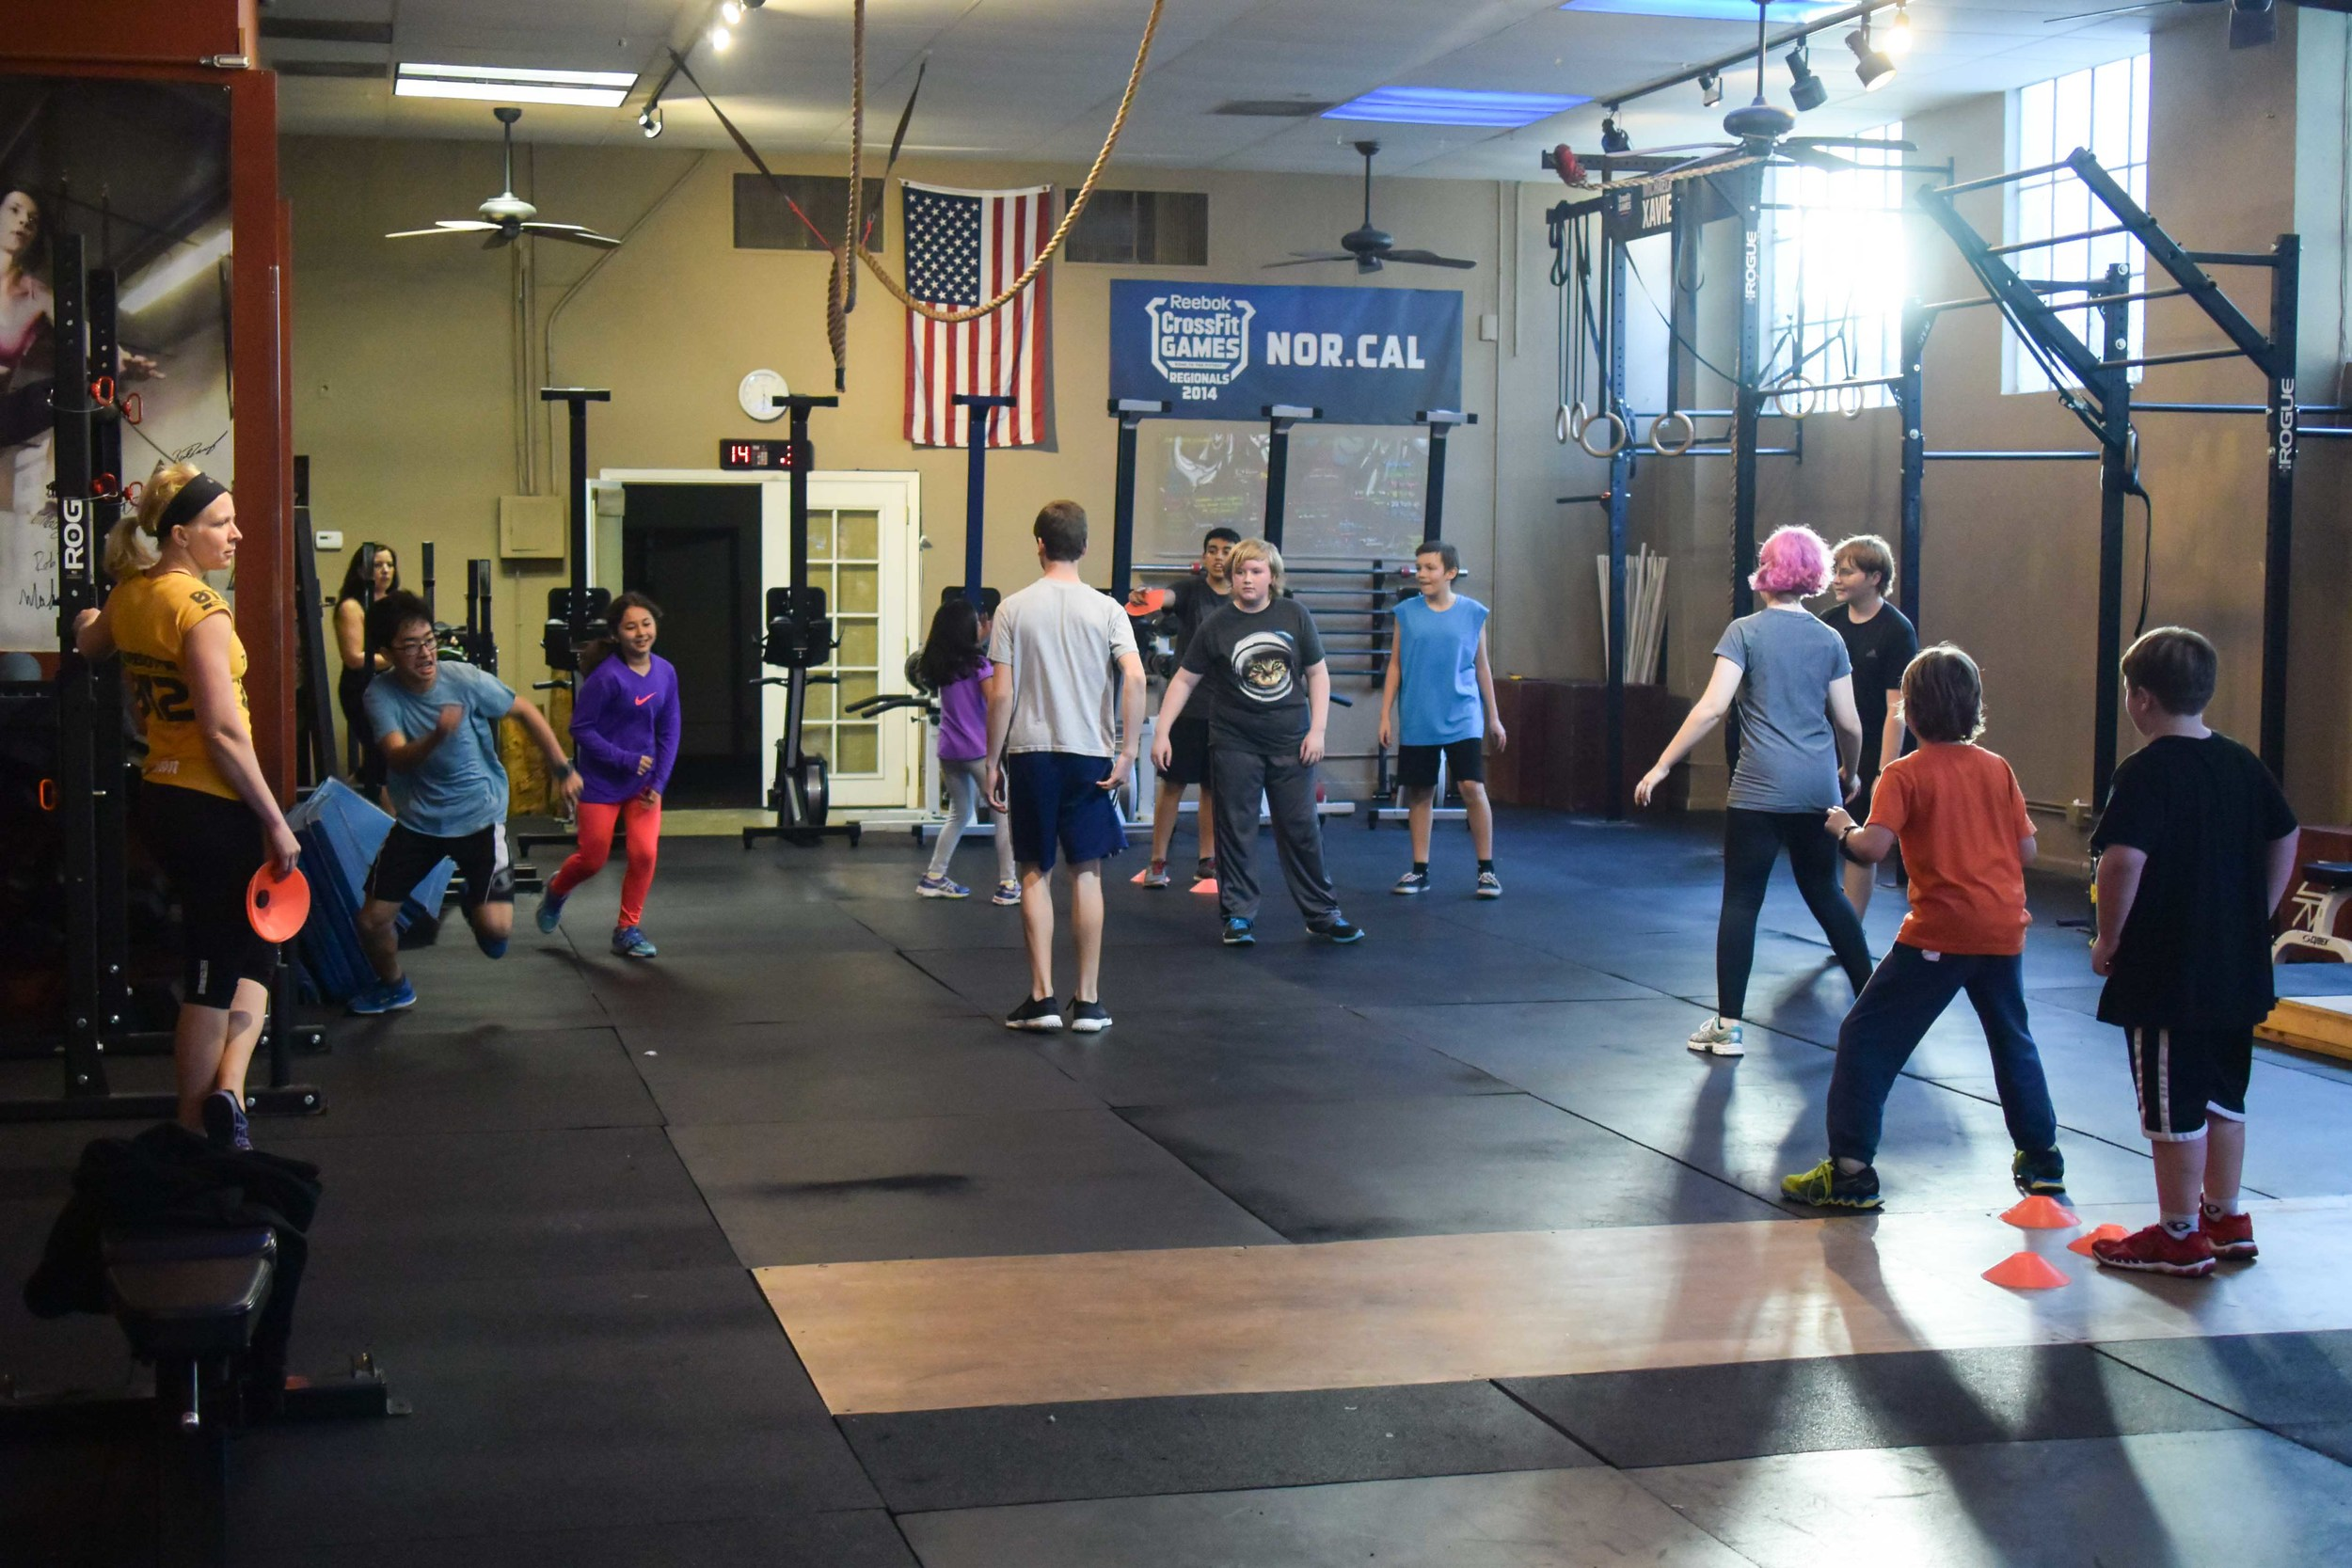 Over the years, Becky developed the kids class from 2 kids just 3 years ago to a fun filled CrossFit Kids program here at CFSV. Our future movers, shakers,and leaders are training HERE! Thank you Becky and we will carry on the fun and fitness as you embark on your new journey! We will soon add a weekend class for kids! Start date TBA!